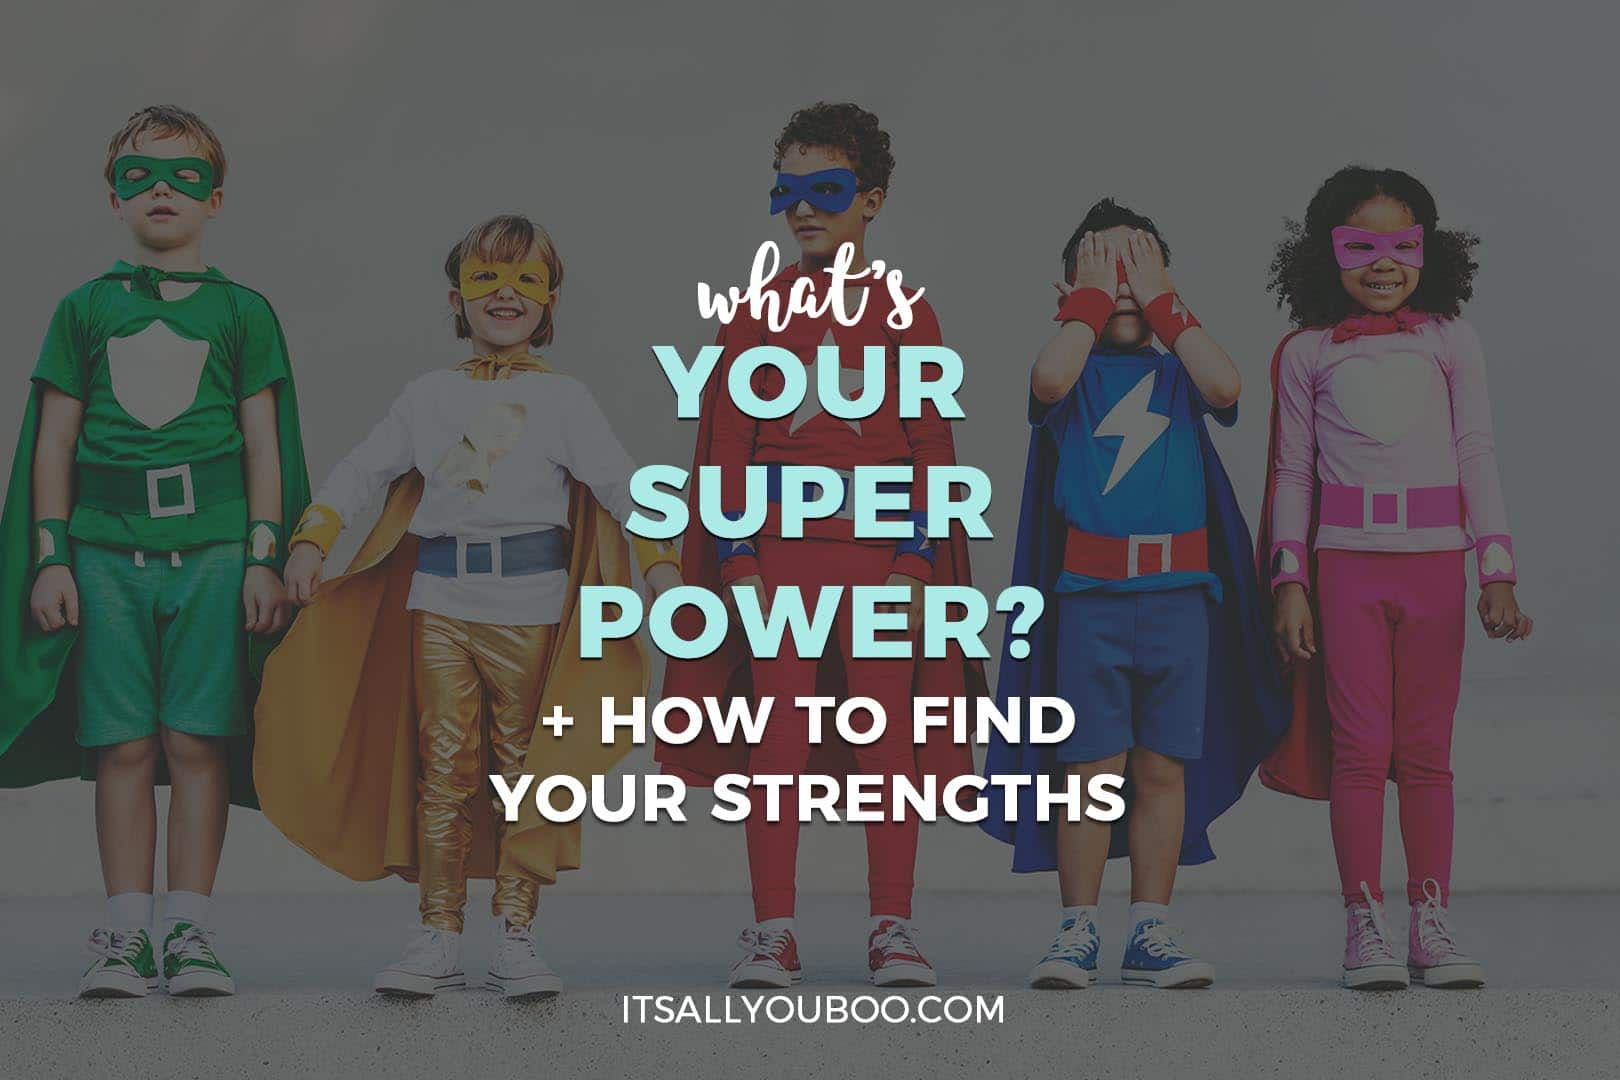 What's Your Superpower? How to Find Your Strengths